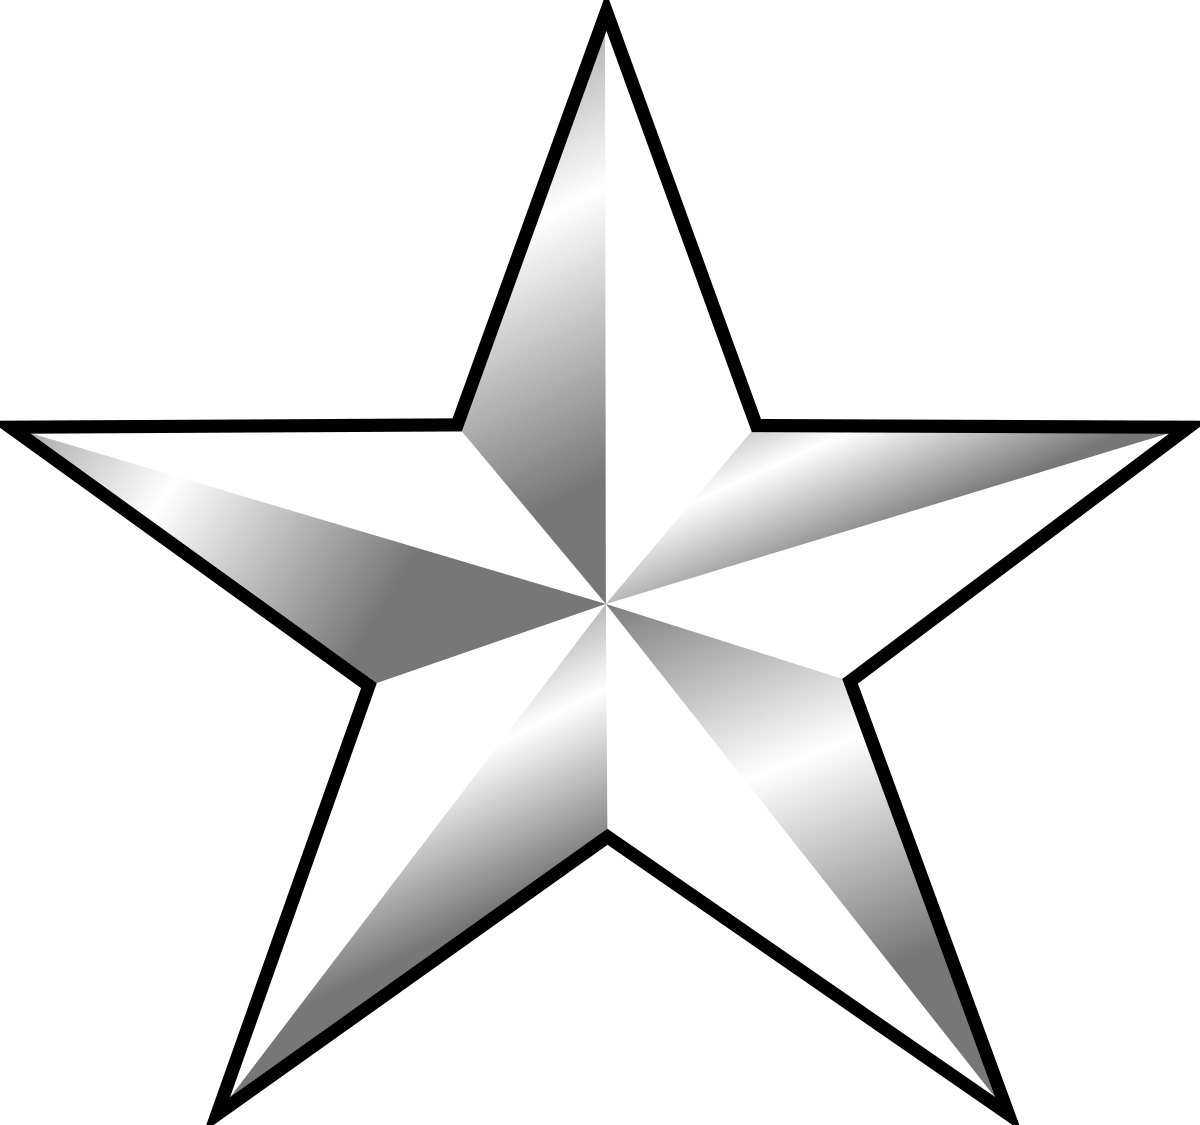 Air force star clipart clip royalty free download One-star rank - Wikipedia clip royalty free download